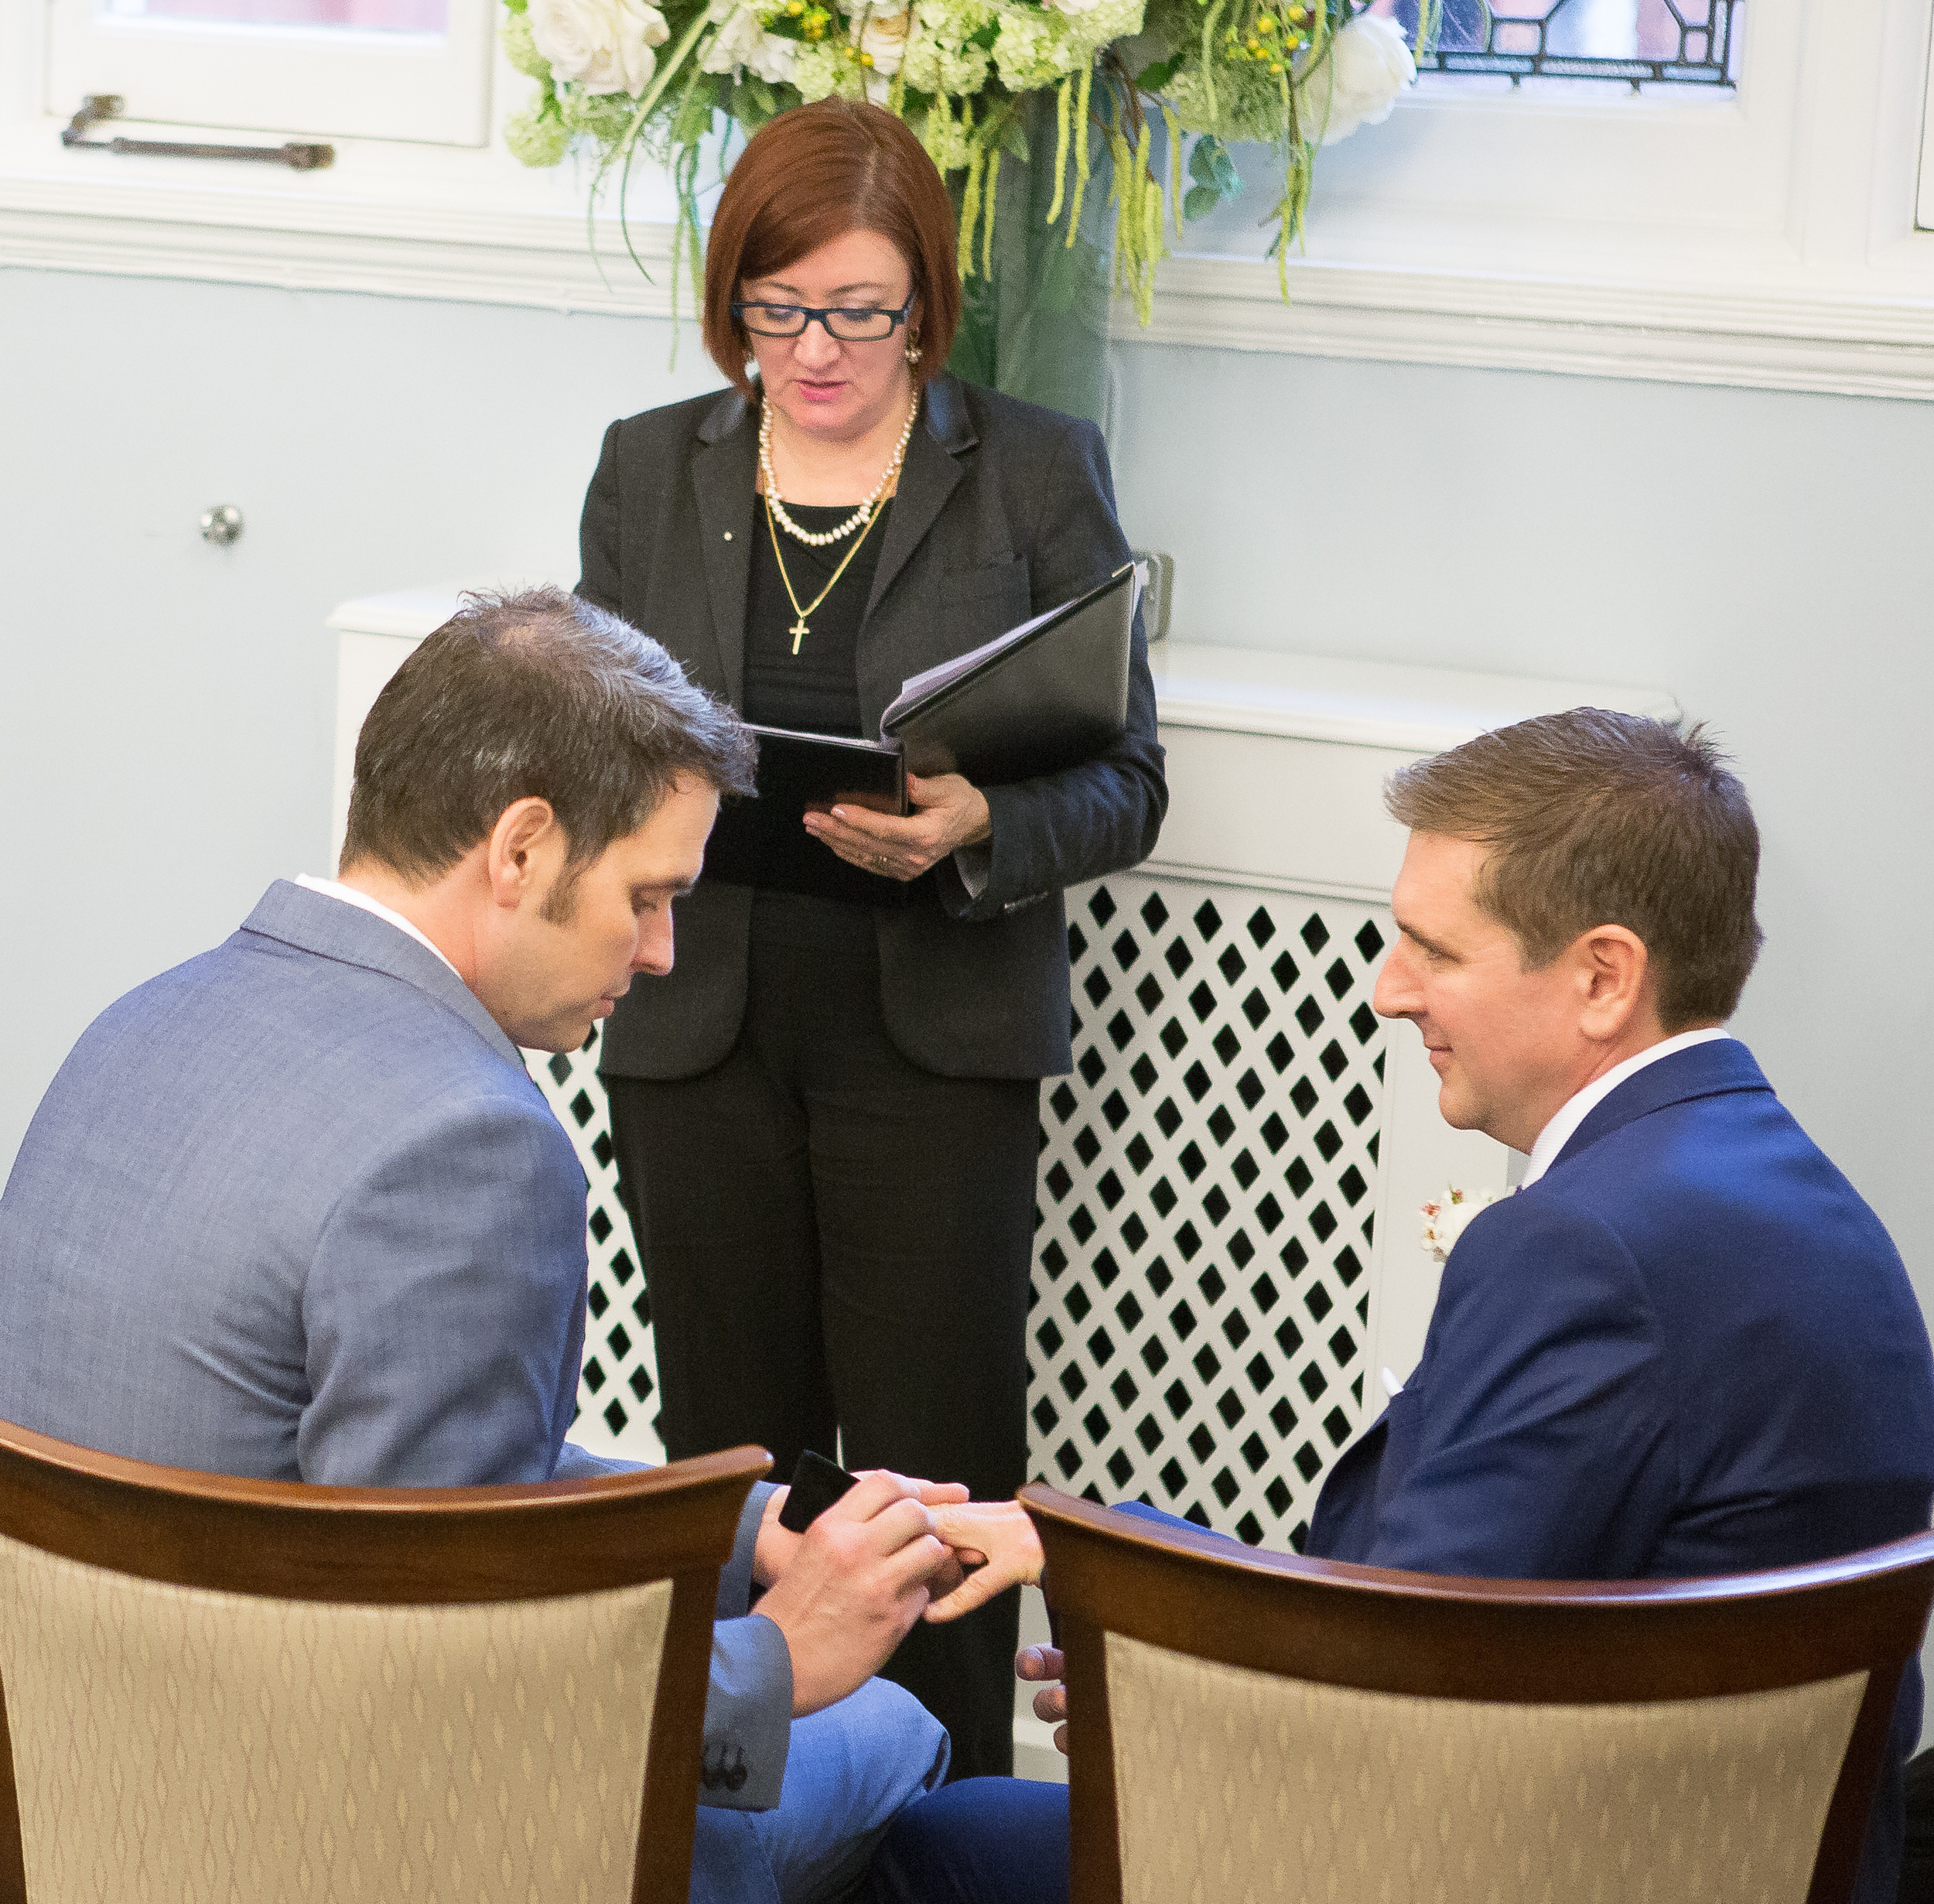 mayfair wedding same sex marriage london photography 6